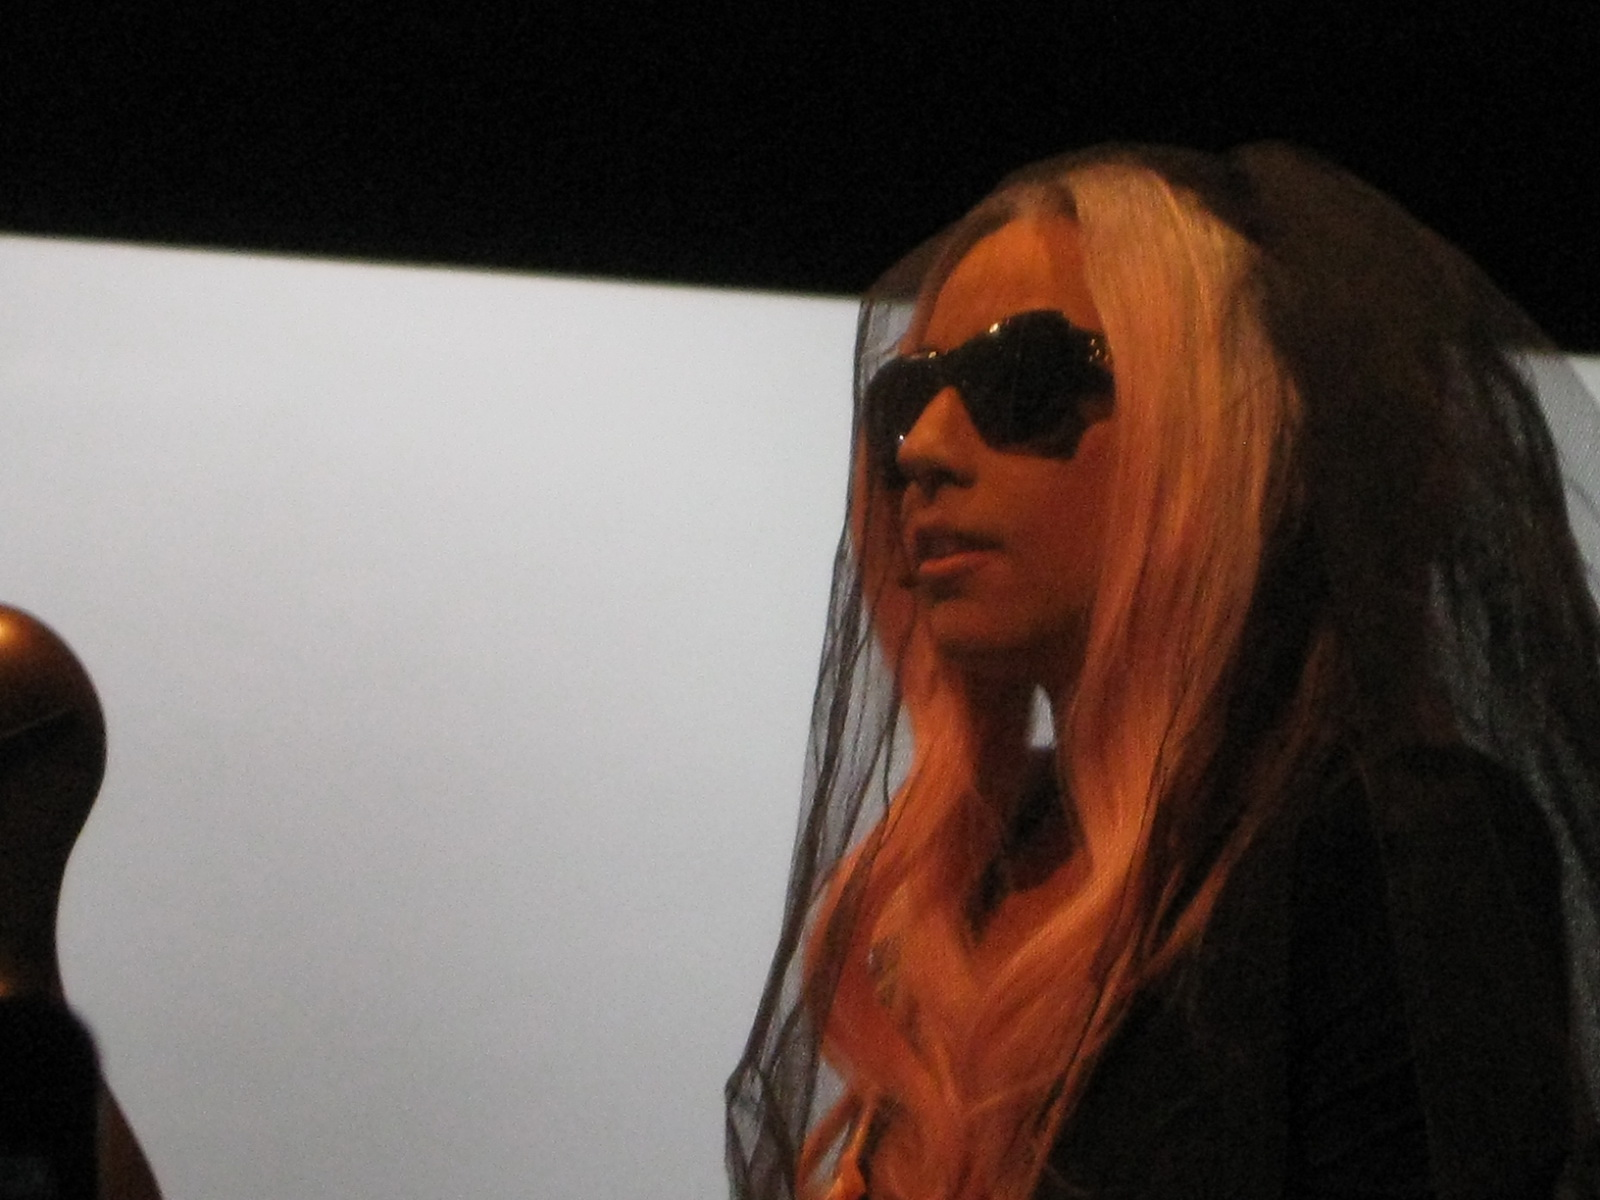 Lady Gaga at Polaroid Booth CES 2011